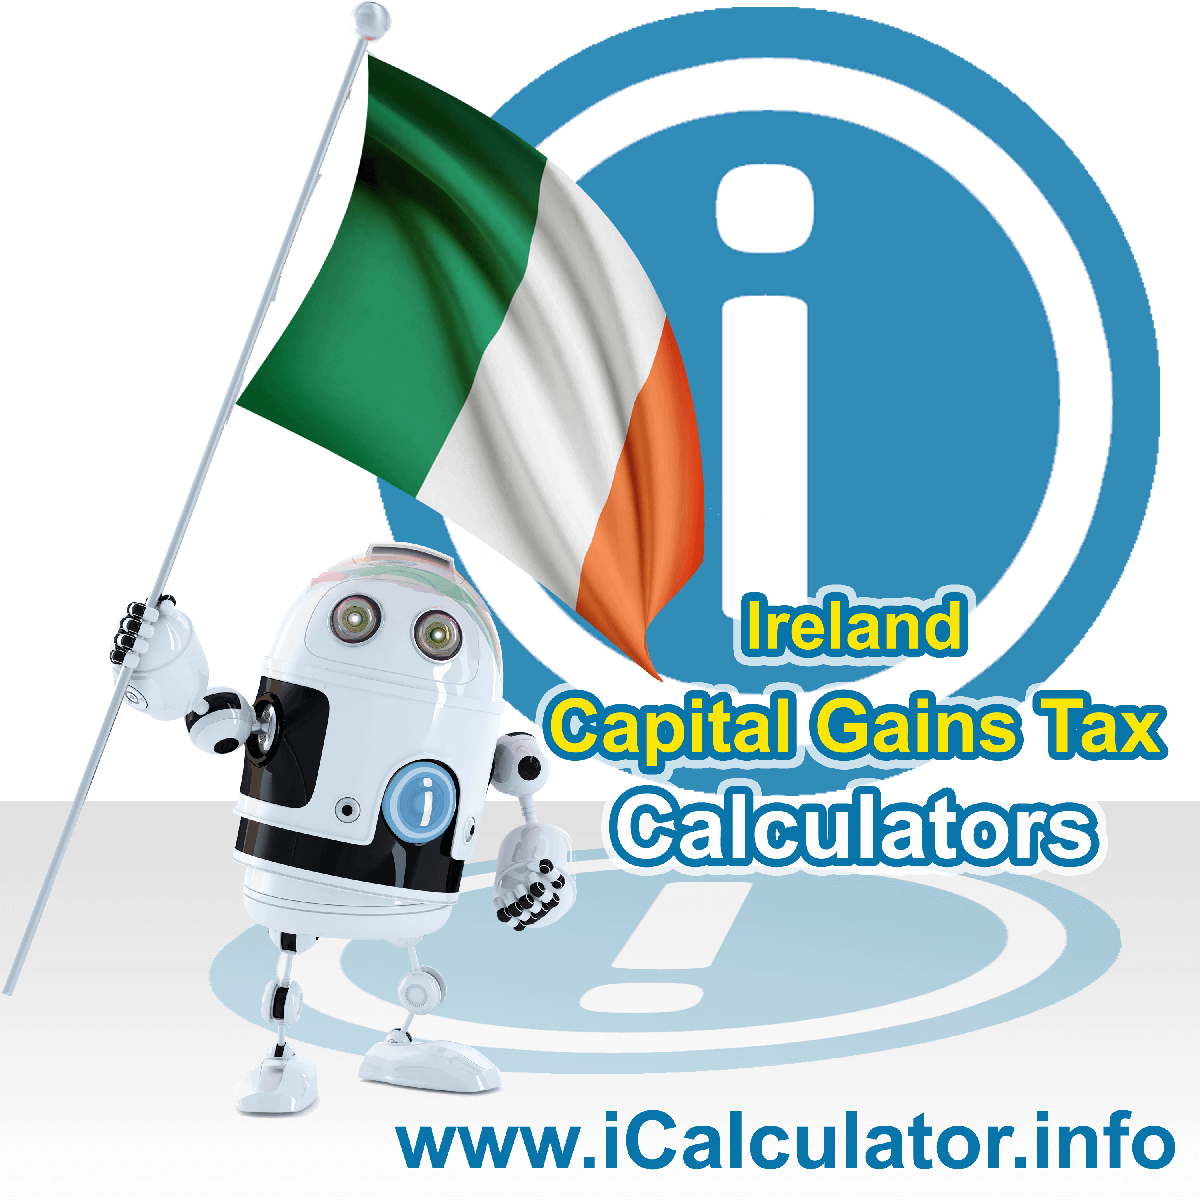 Ireland Capital Gains Tax Calculator. This image shows the Ireland flag and information relating to the capital gains tax rate formula used for calculating Capital Gains Tax in Ireland using the Ireland Capital Gains Tax Calculator in 2021